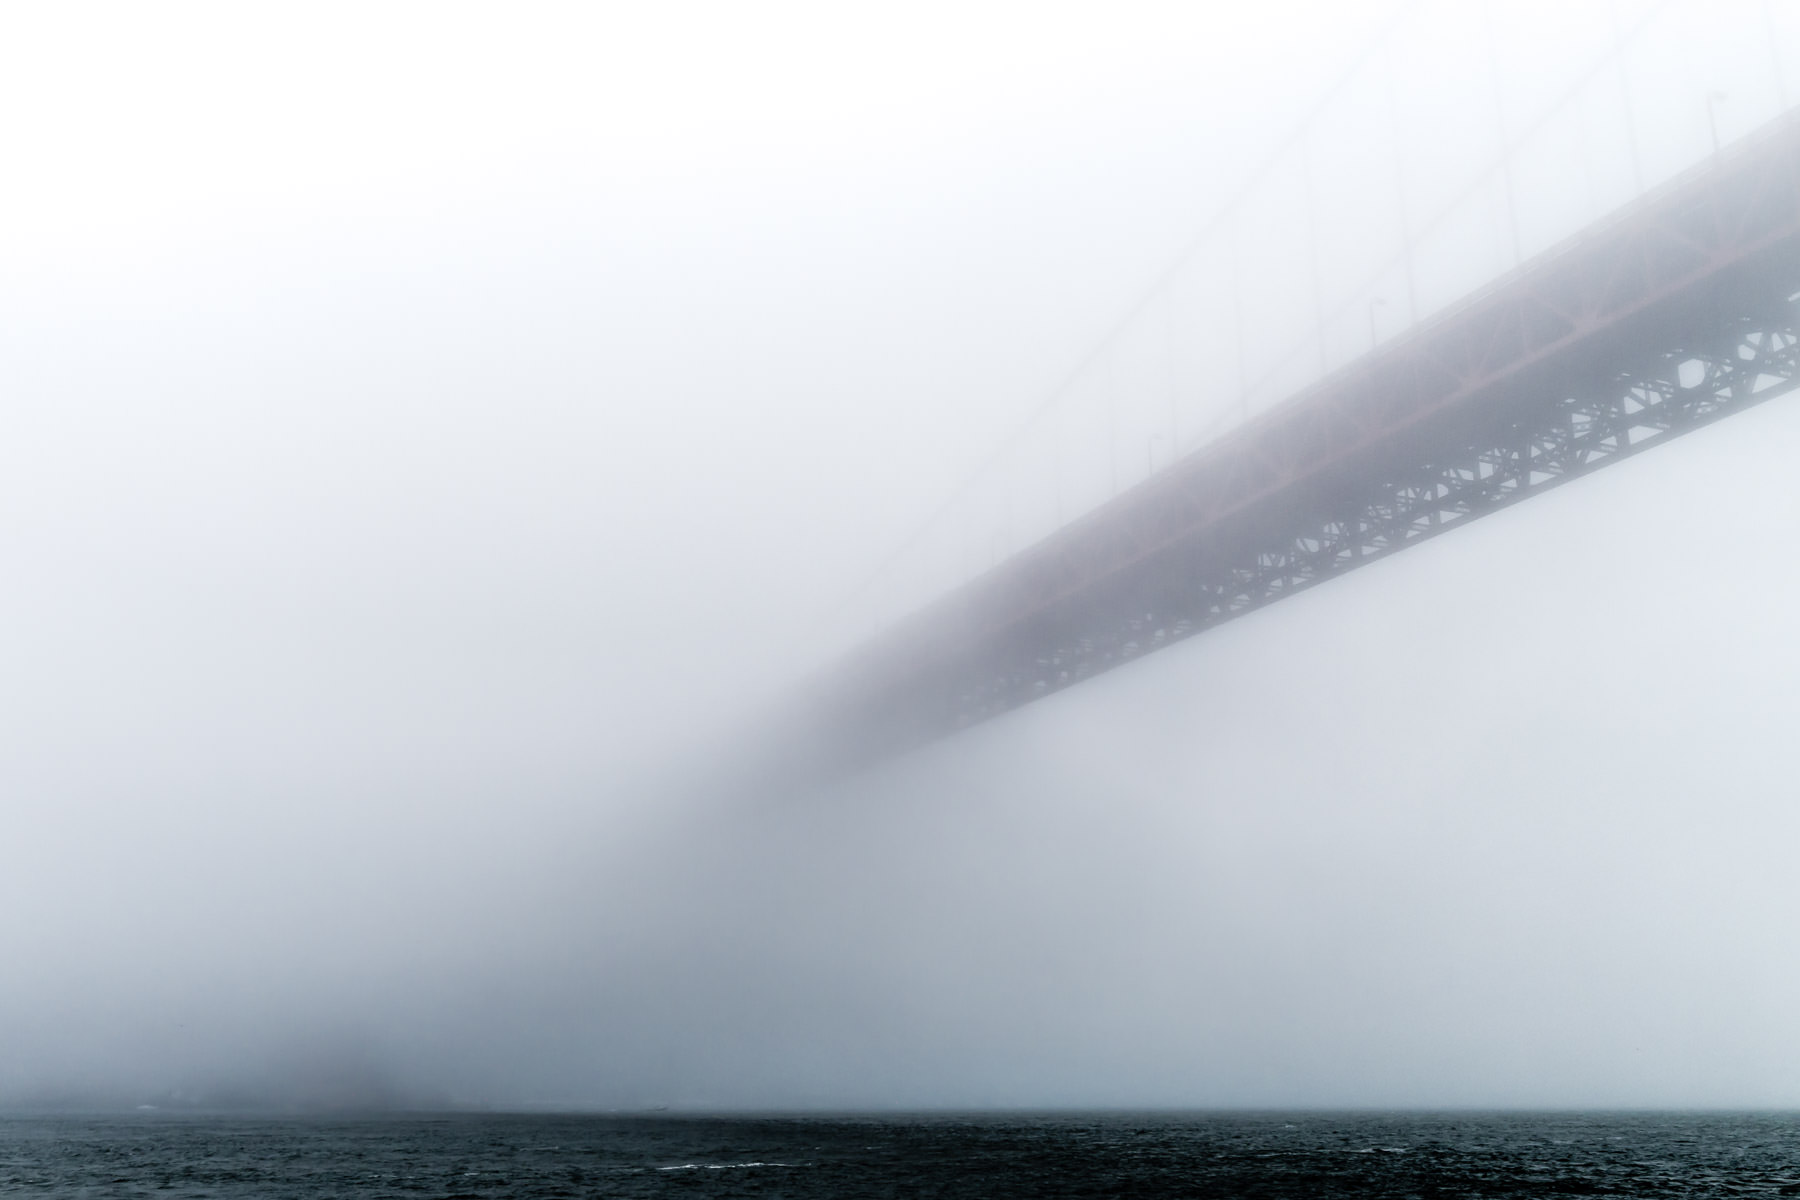 Fog on San Francisco Bay swallows the city's iconic Golden Gate Bridge.